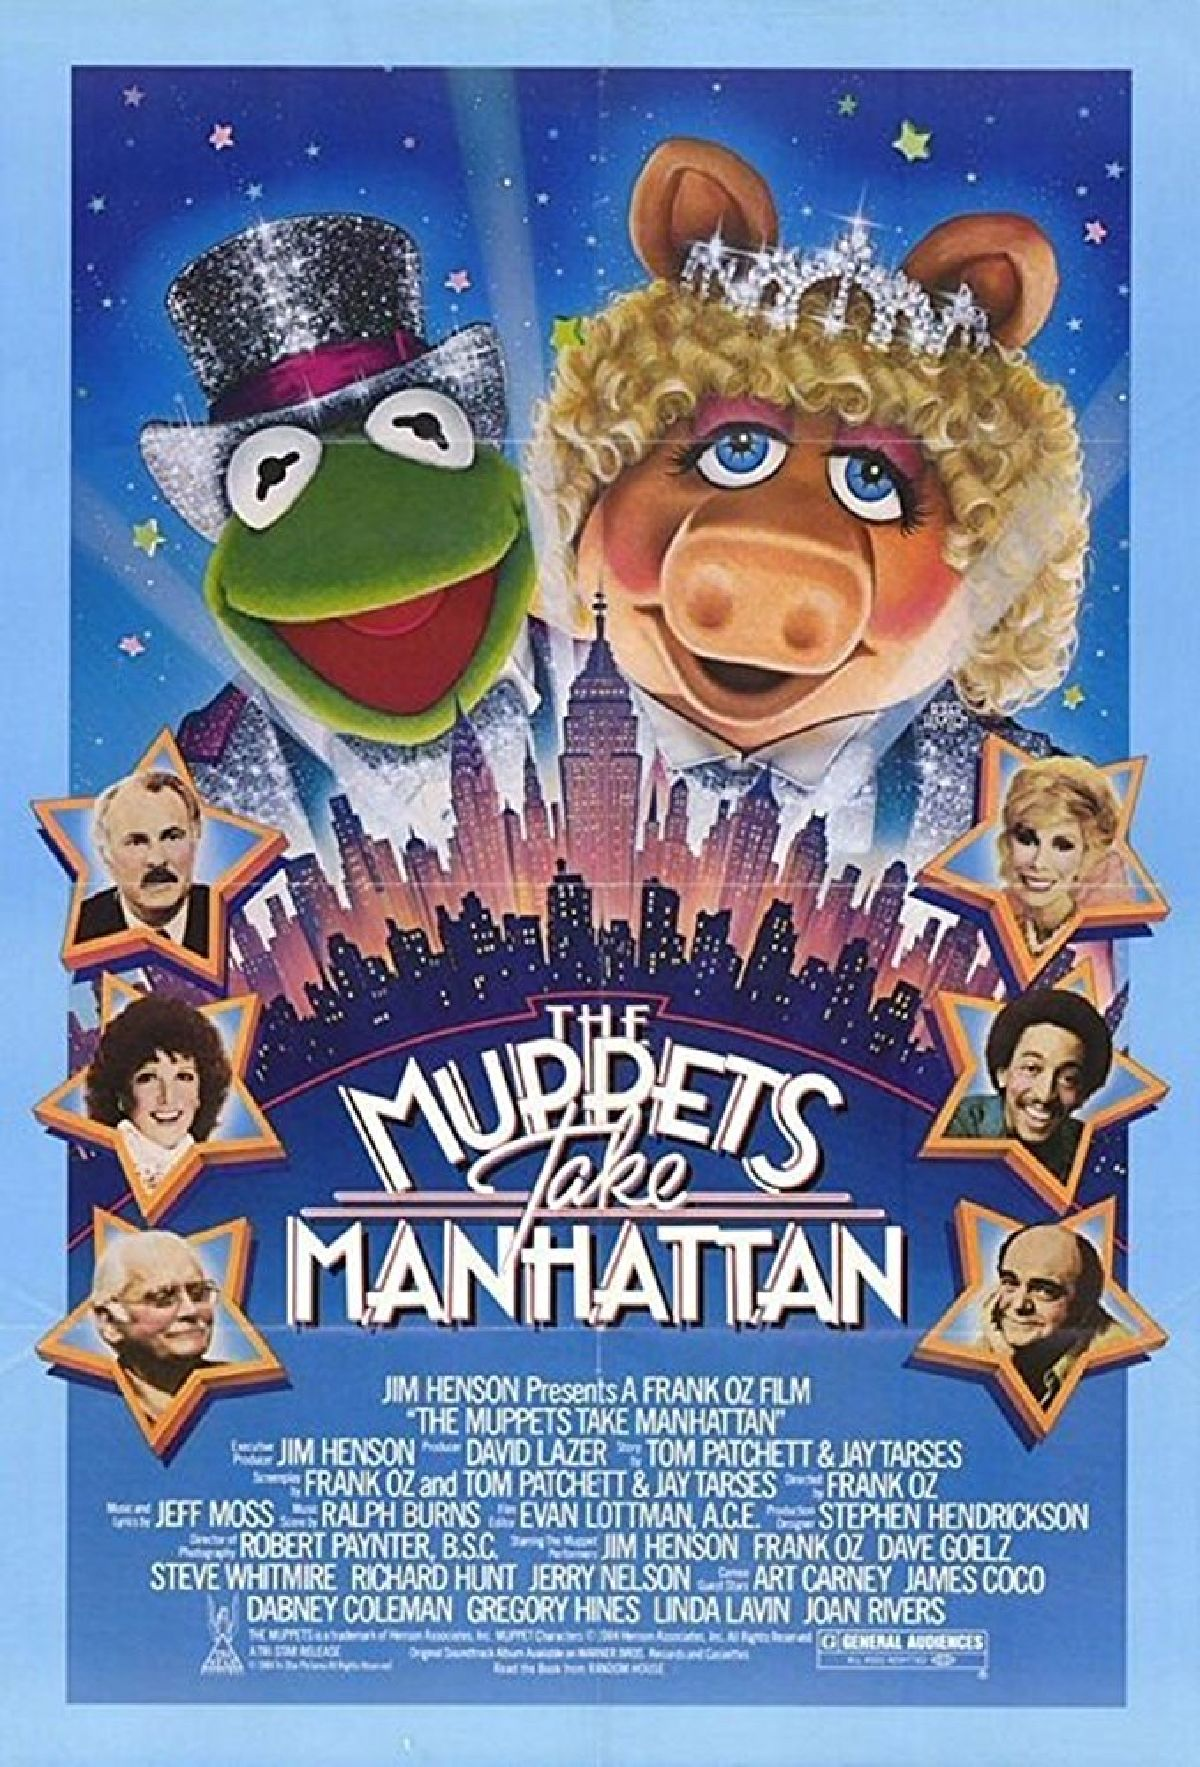 'The Muppets Take Manhattan' movie poster